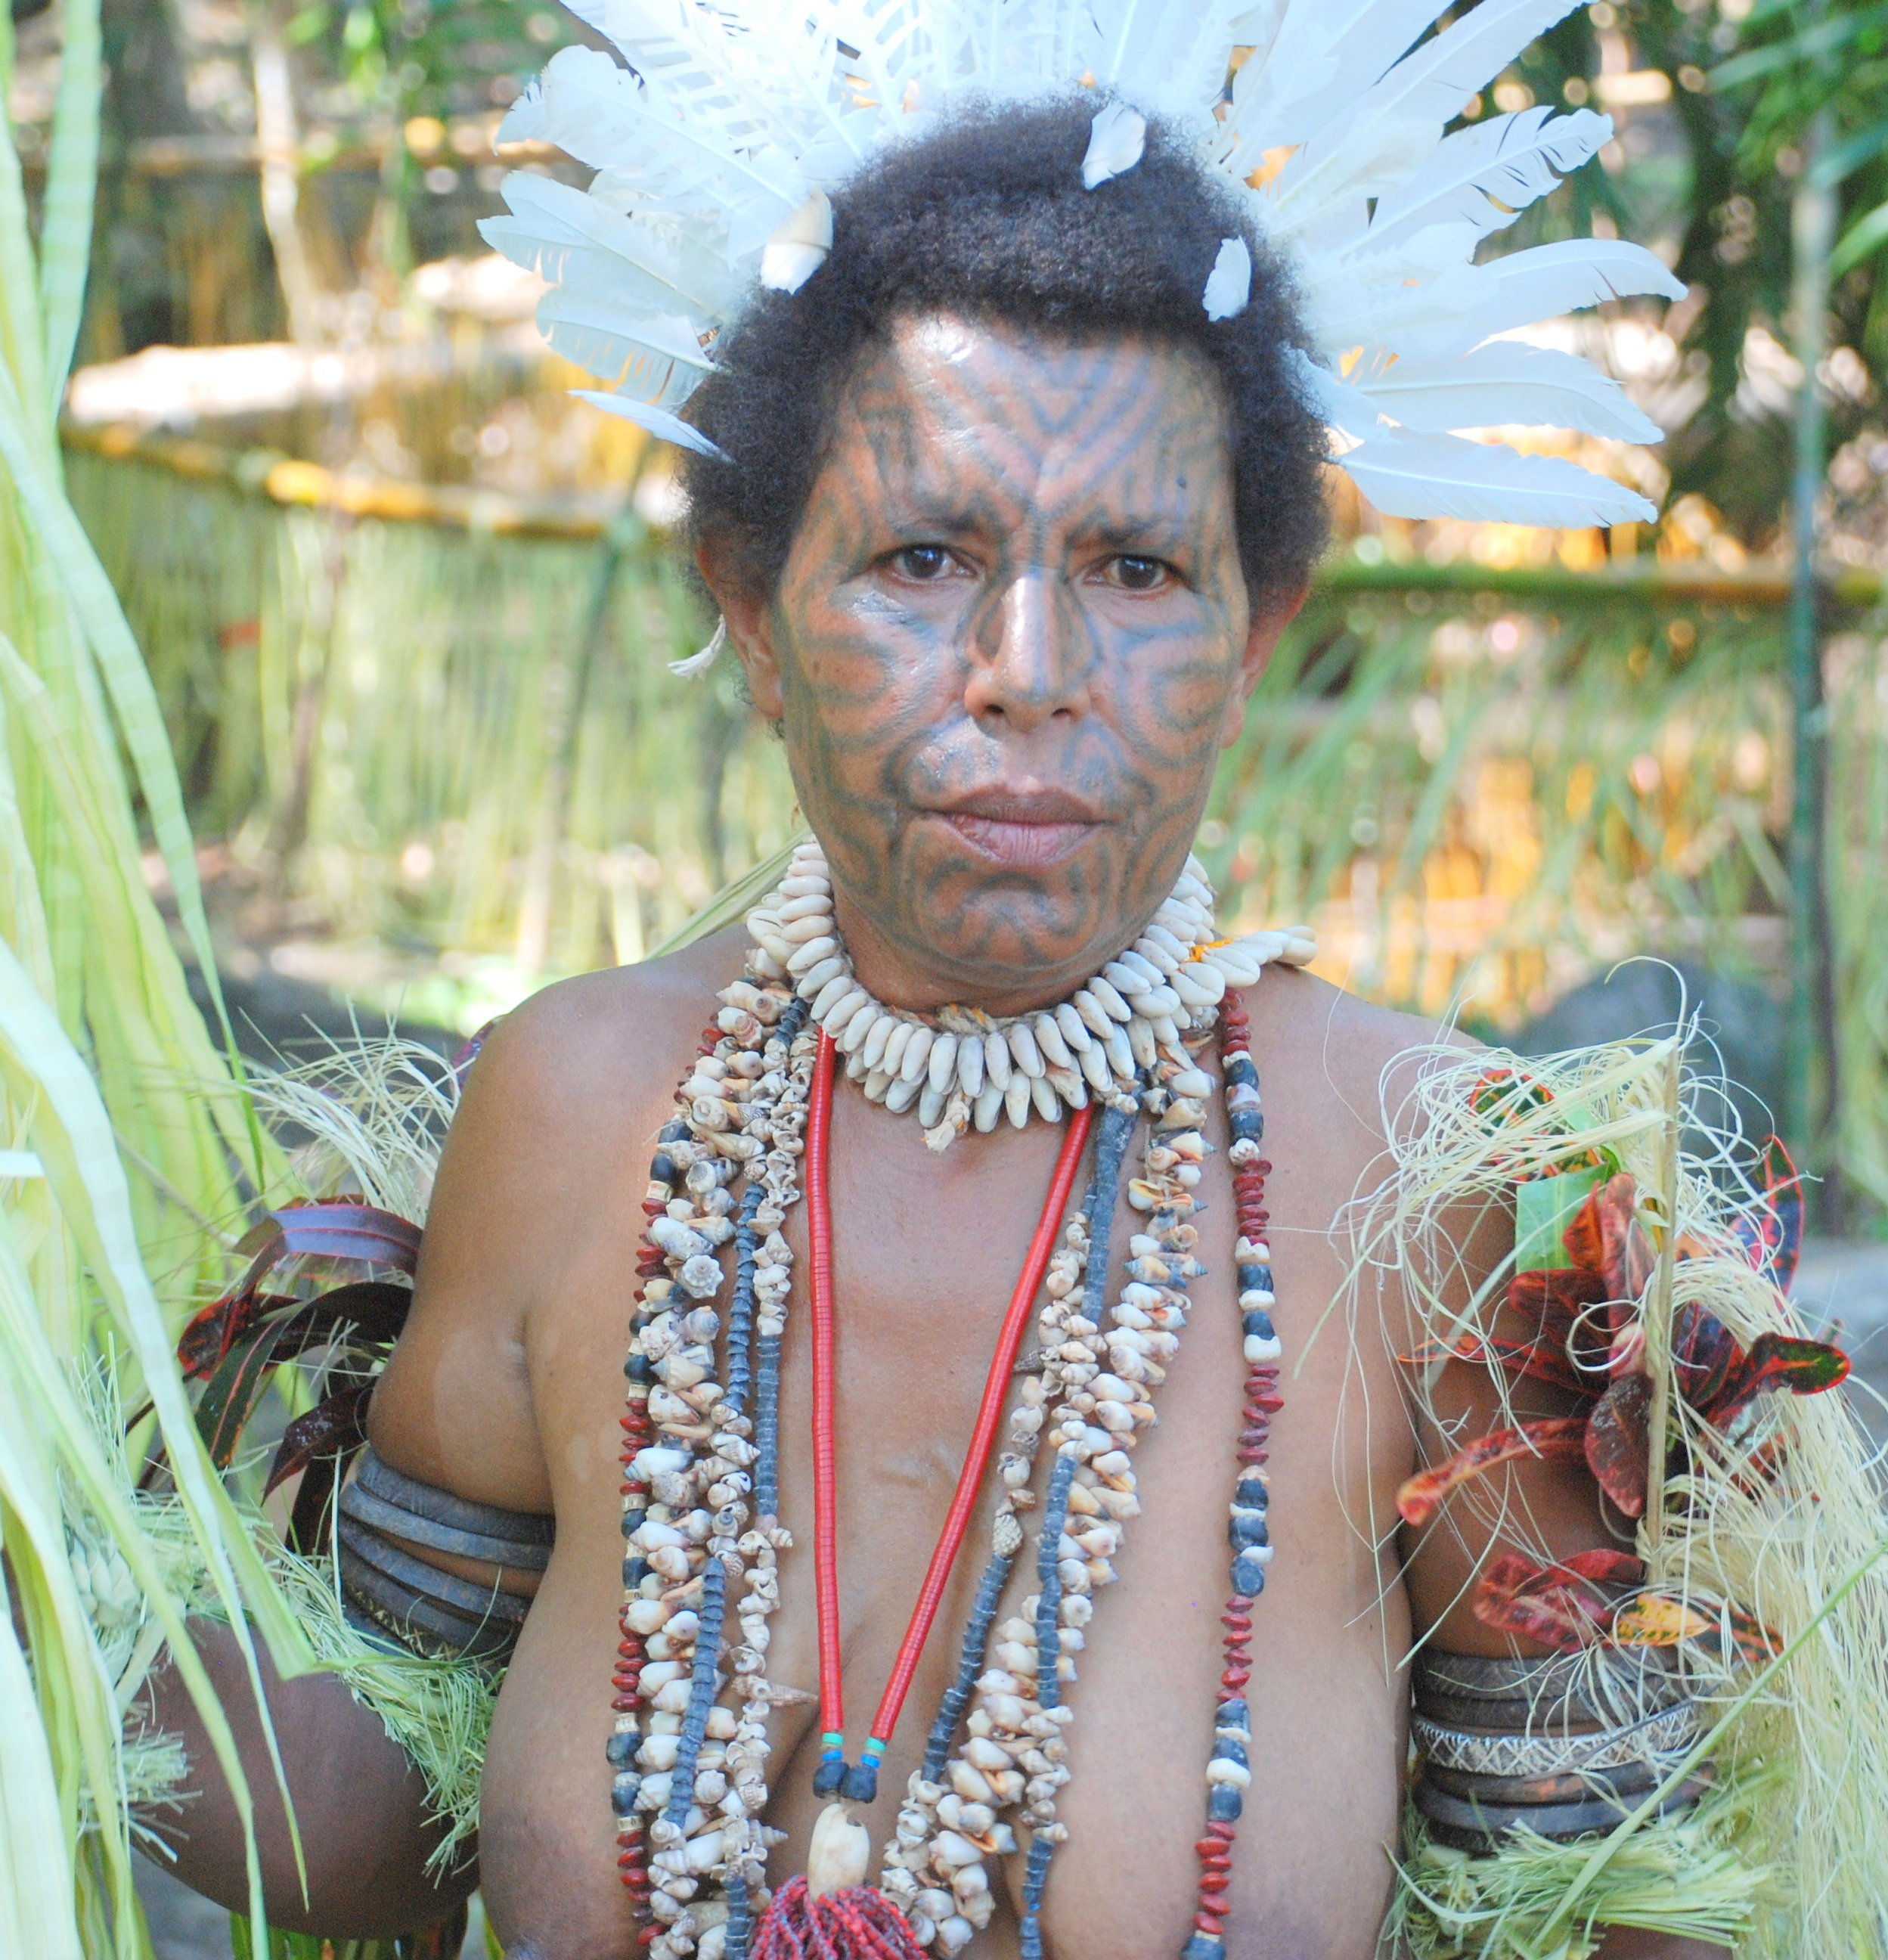 Papua New Guinea Carolyn S Travel Stories